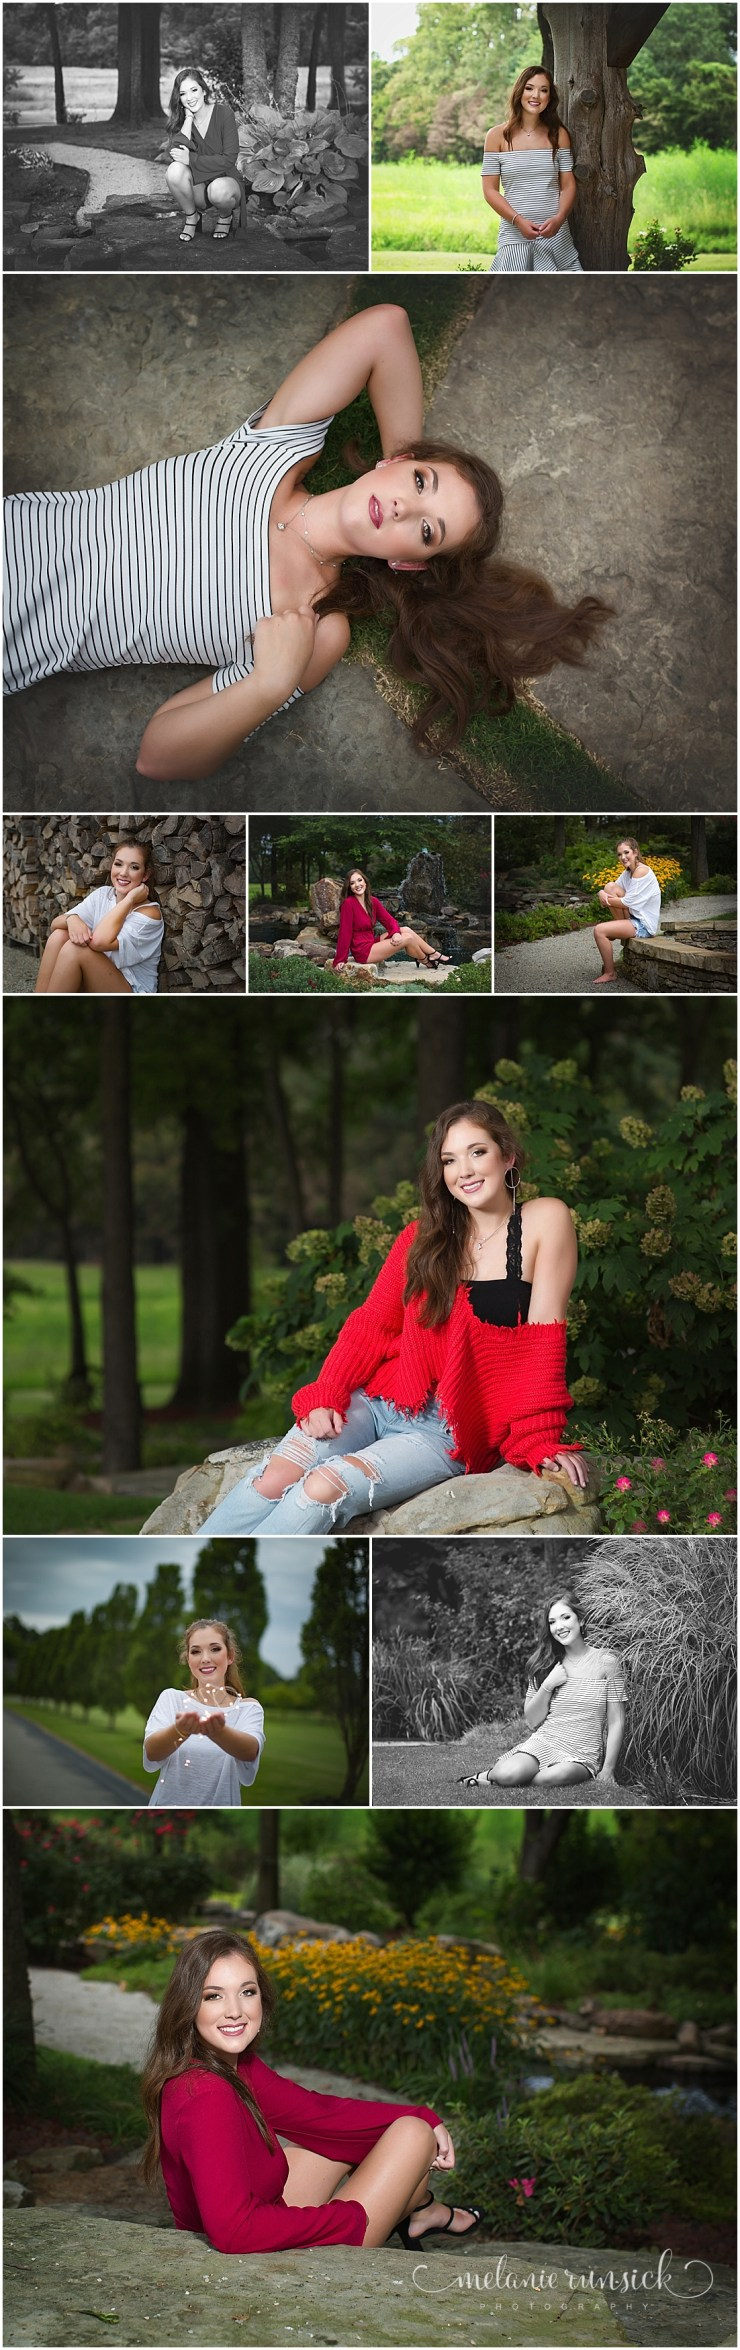 Valley View High School Senior Photographer Melanie Runsick Photography Jonesboro AR